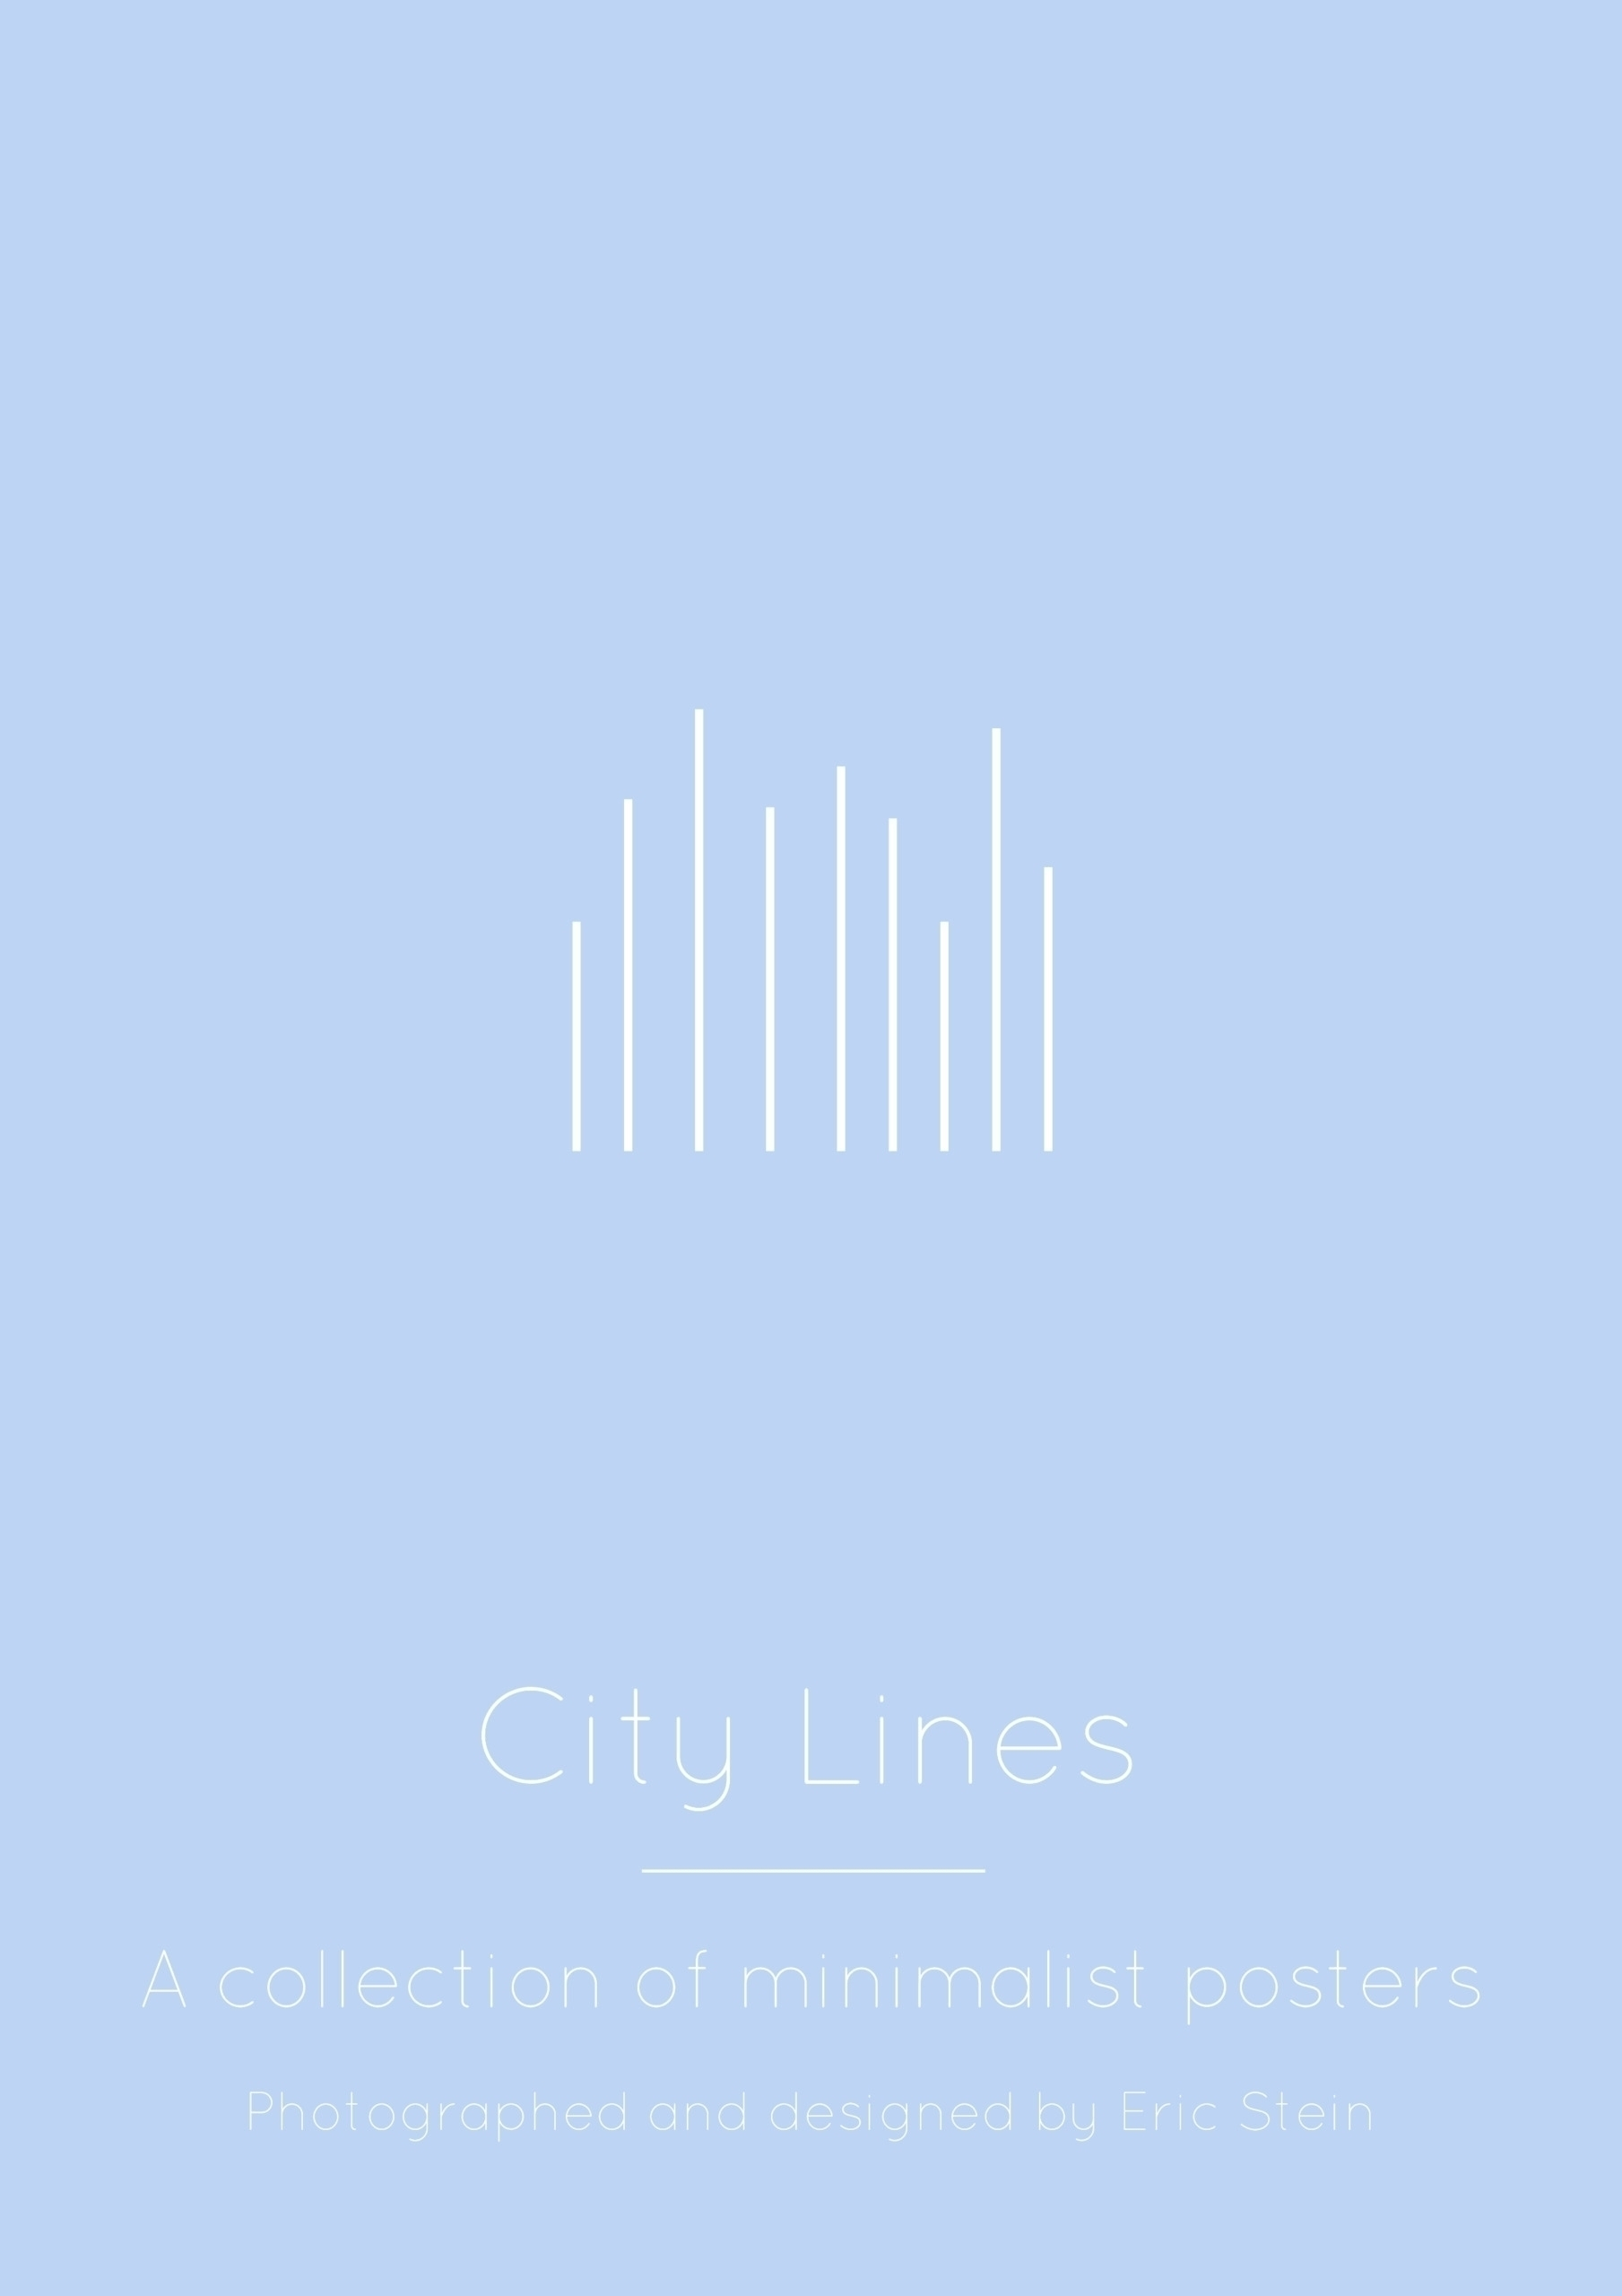 City Lines collection minimalis - ericste_in | ello